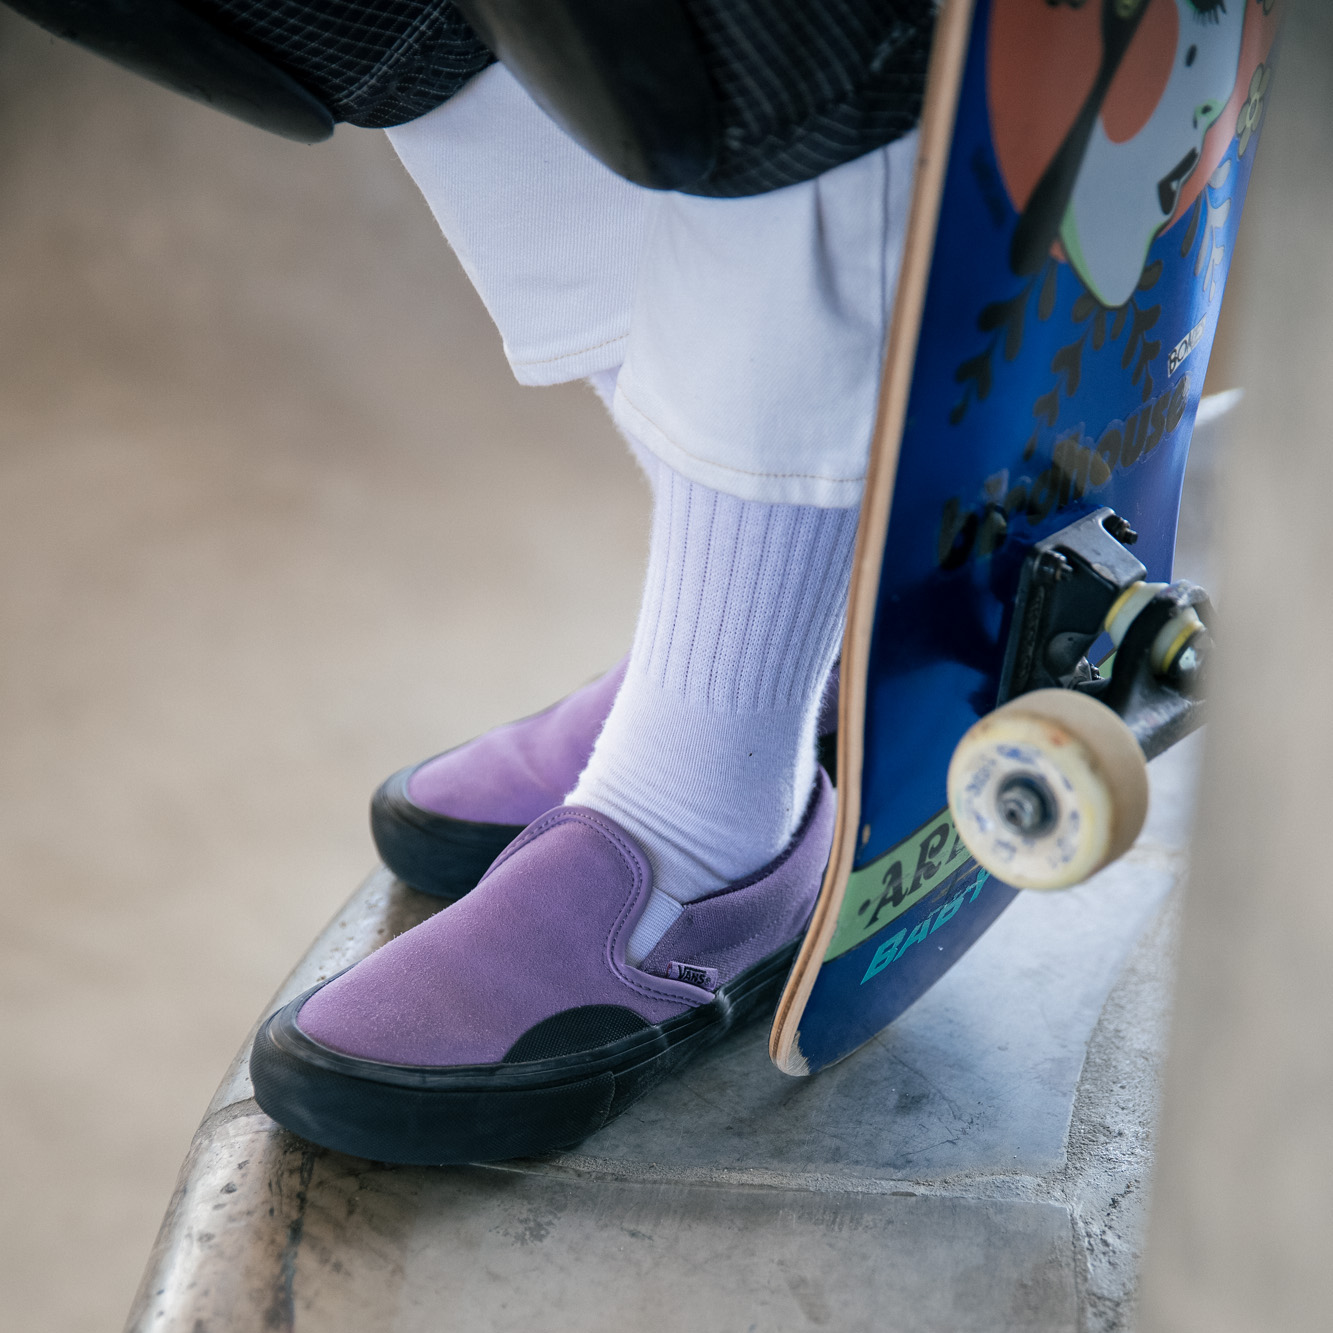 PRO SKATER LIZZIE ARMANTO LAUNCHES NEW VANS SKATE FOOTWEAR AND APPAREL COLLECTION